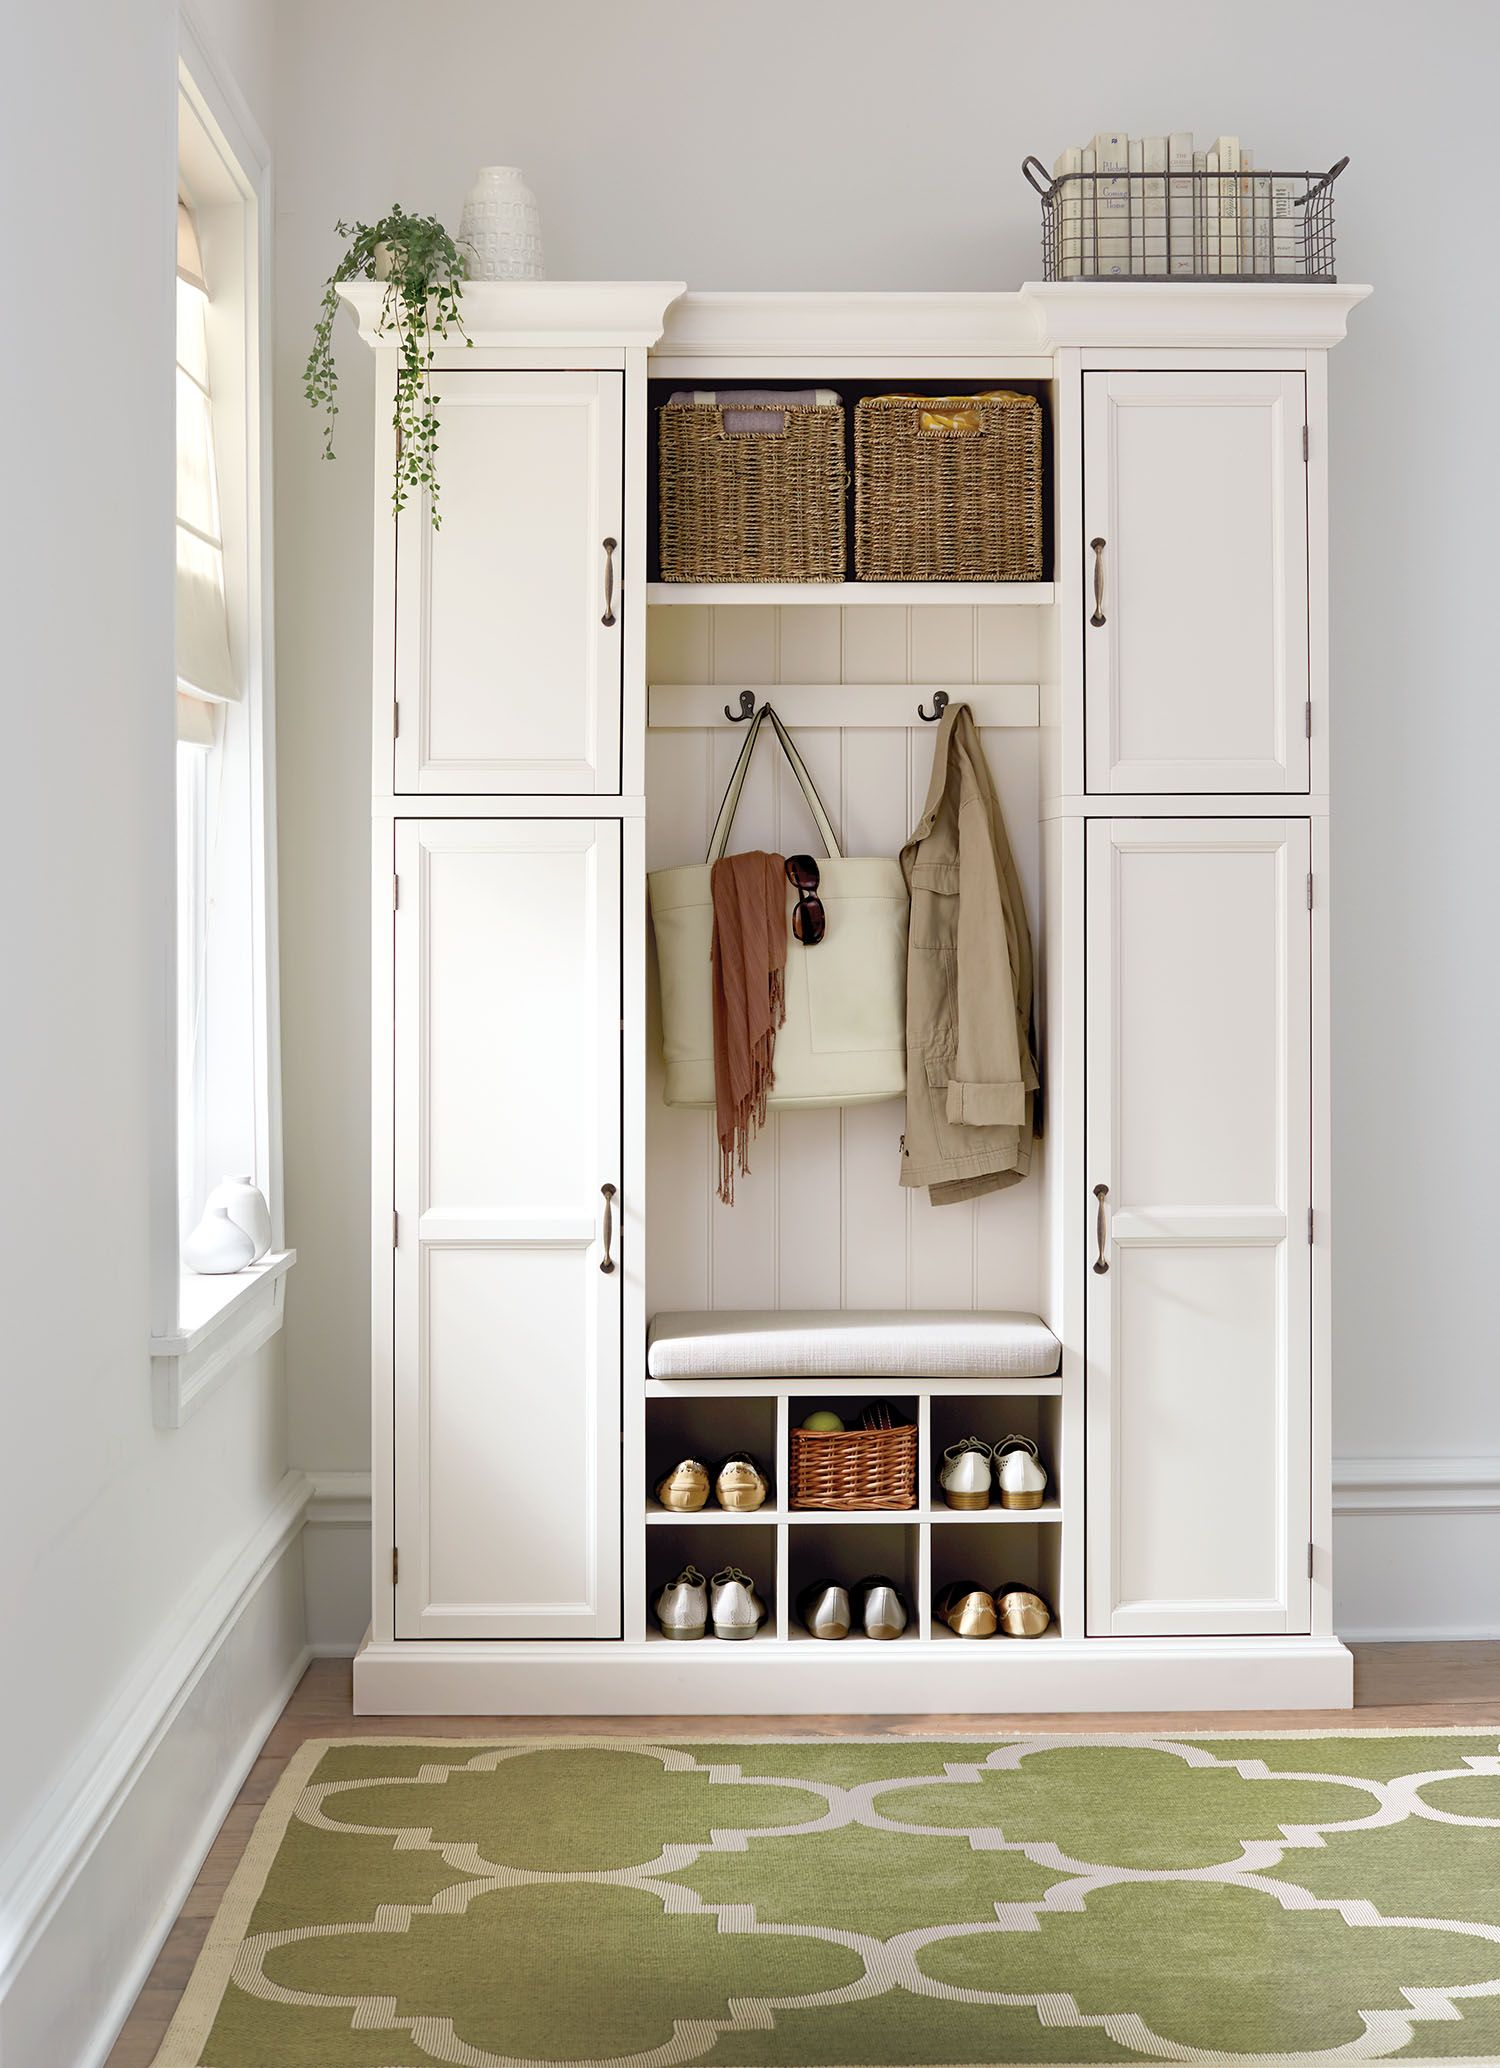 Foyer Closet Storage Ideas : Create storage space where there isn t any this all in